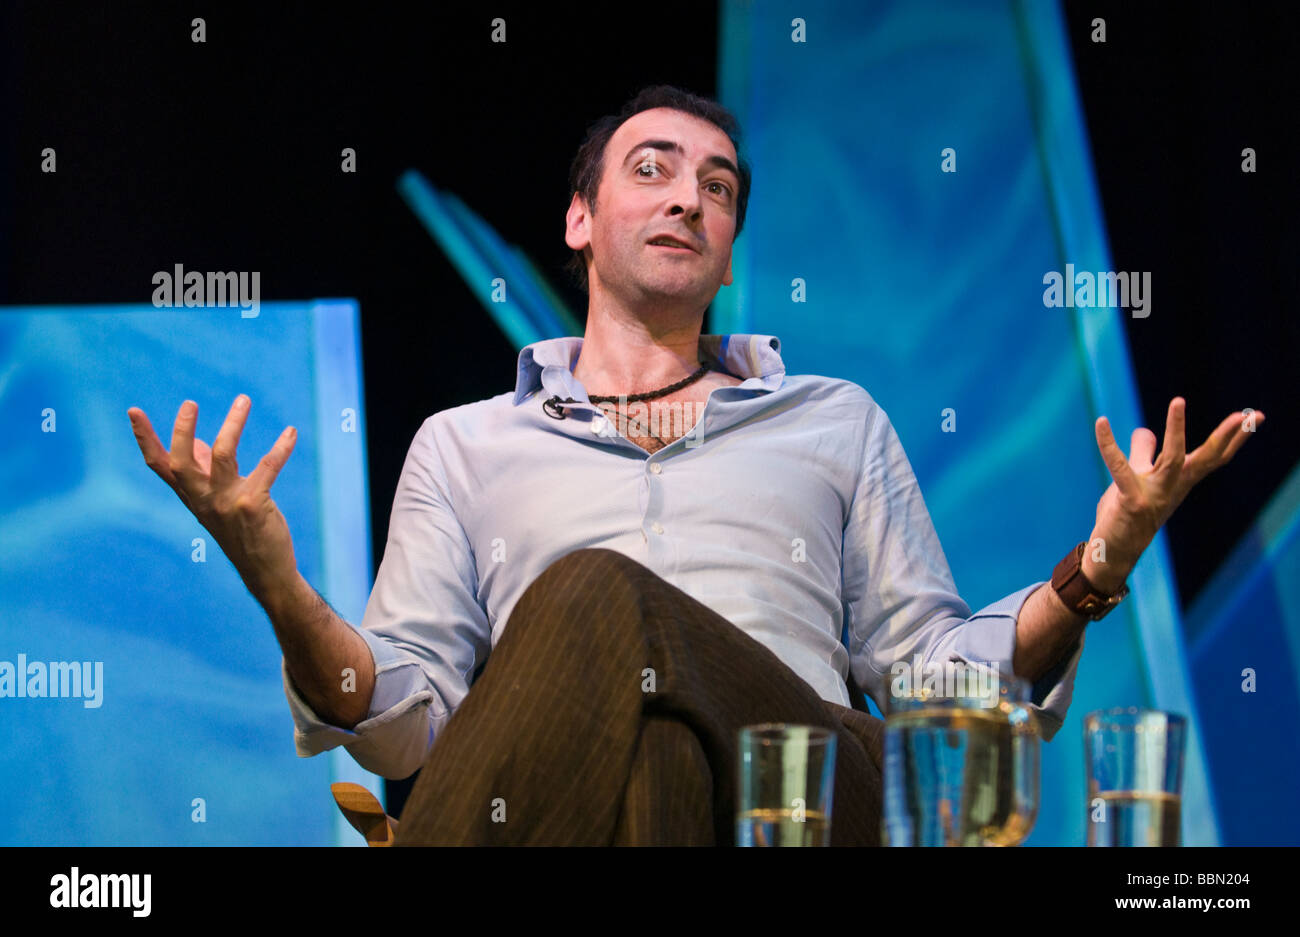 Alistair MacGowan English impressionist comedian and actor pictured at Hay Festival 2009  - Stock Image